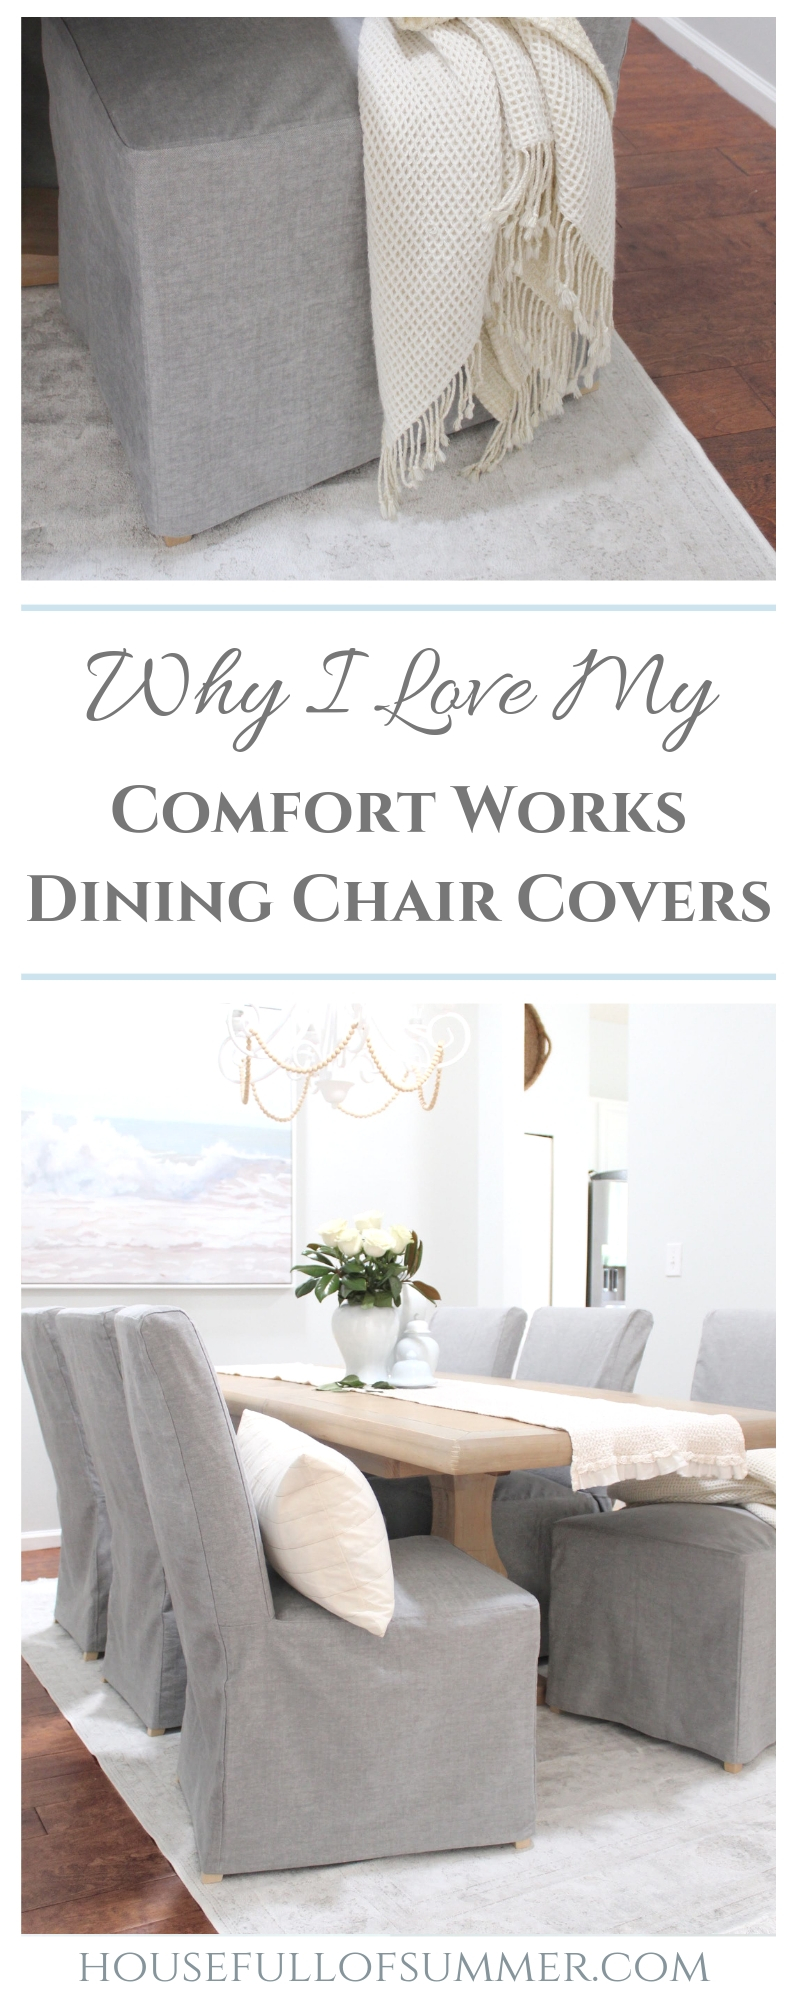 Slip Covers For Chairs Why I Love My Comfort Works Dining Chair Covers House Full Of